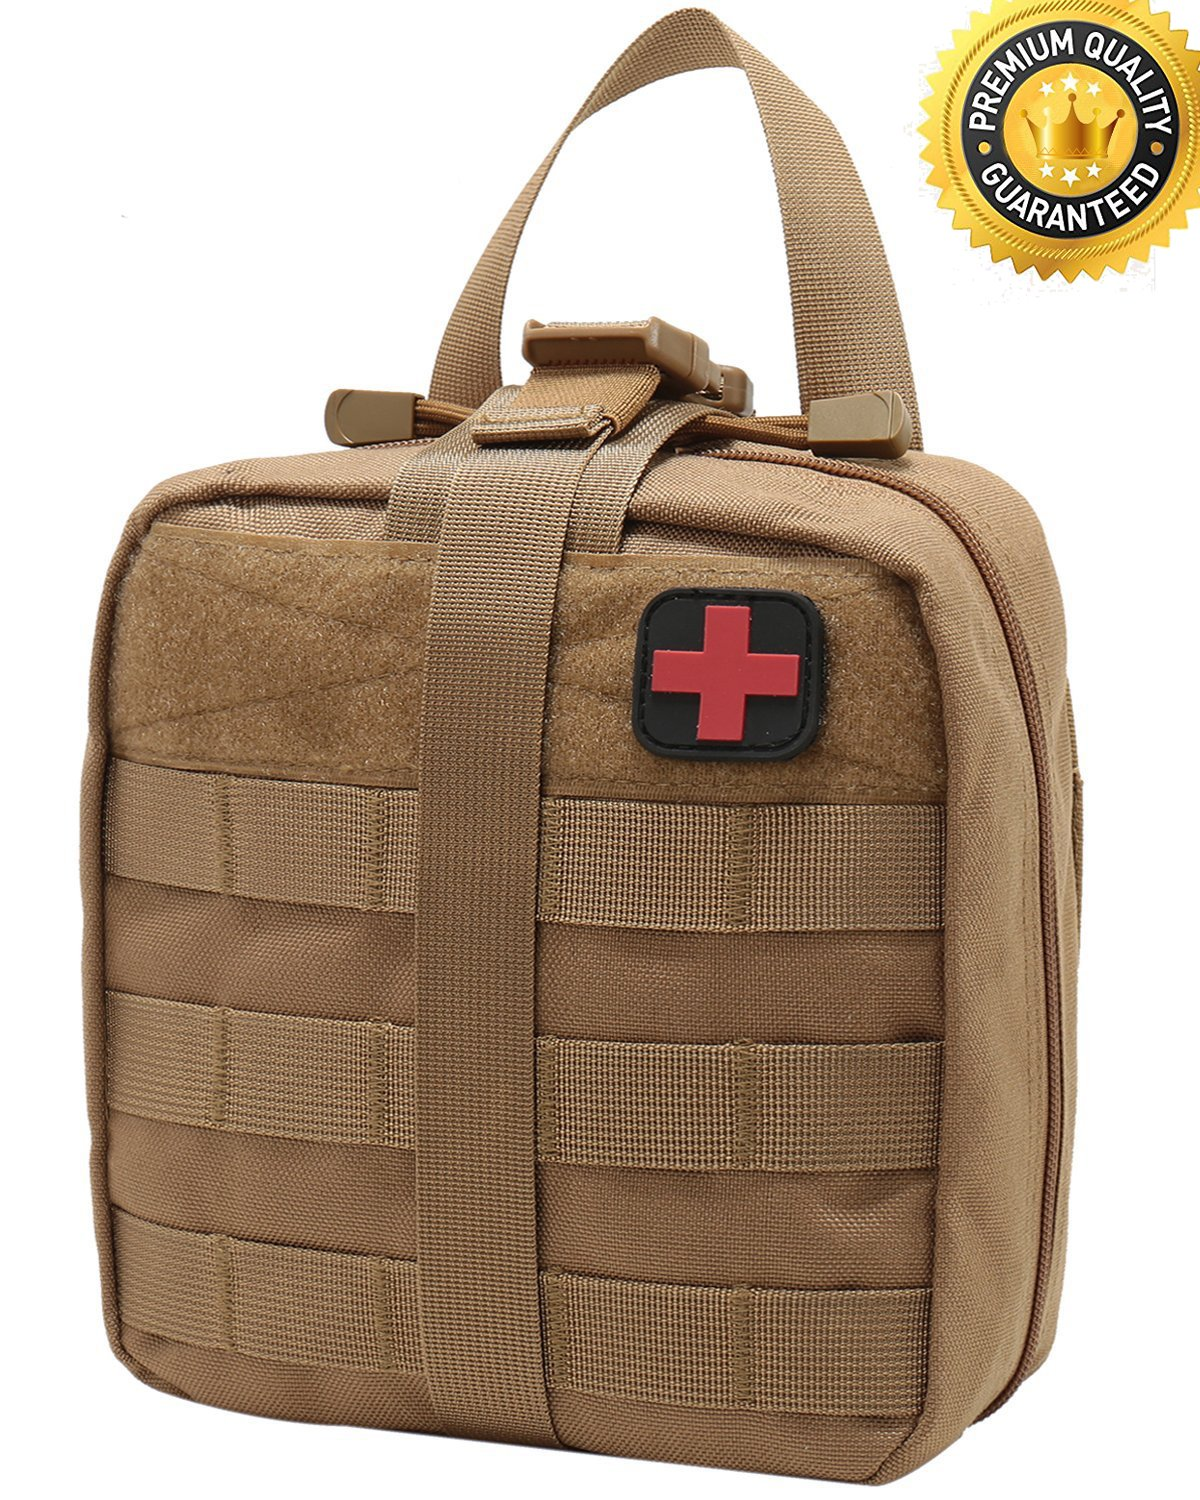 Carlebben Tactical MOLLE Rip Away EMT Medical First Aid IFAK Utility Pouch 1000D Nylon (Brown)